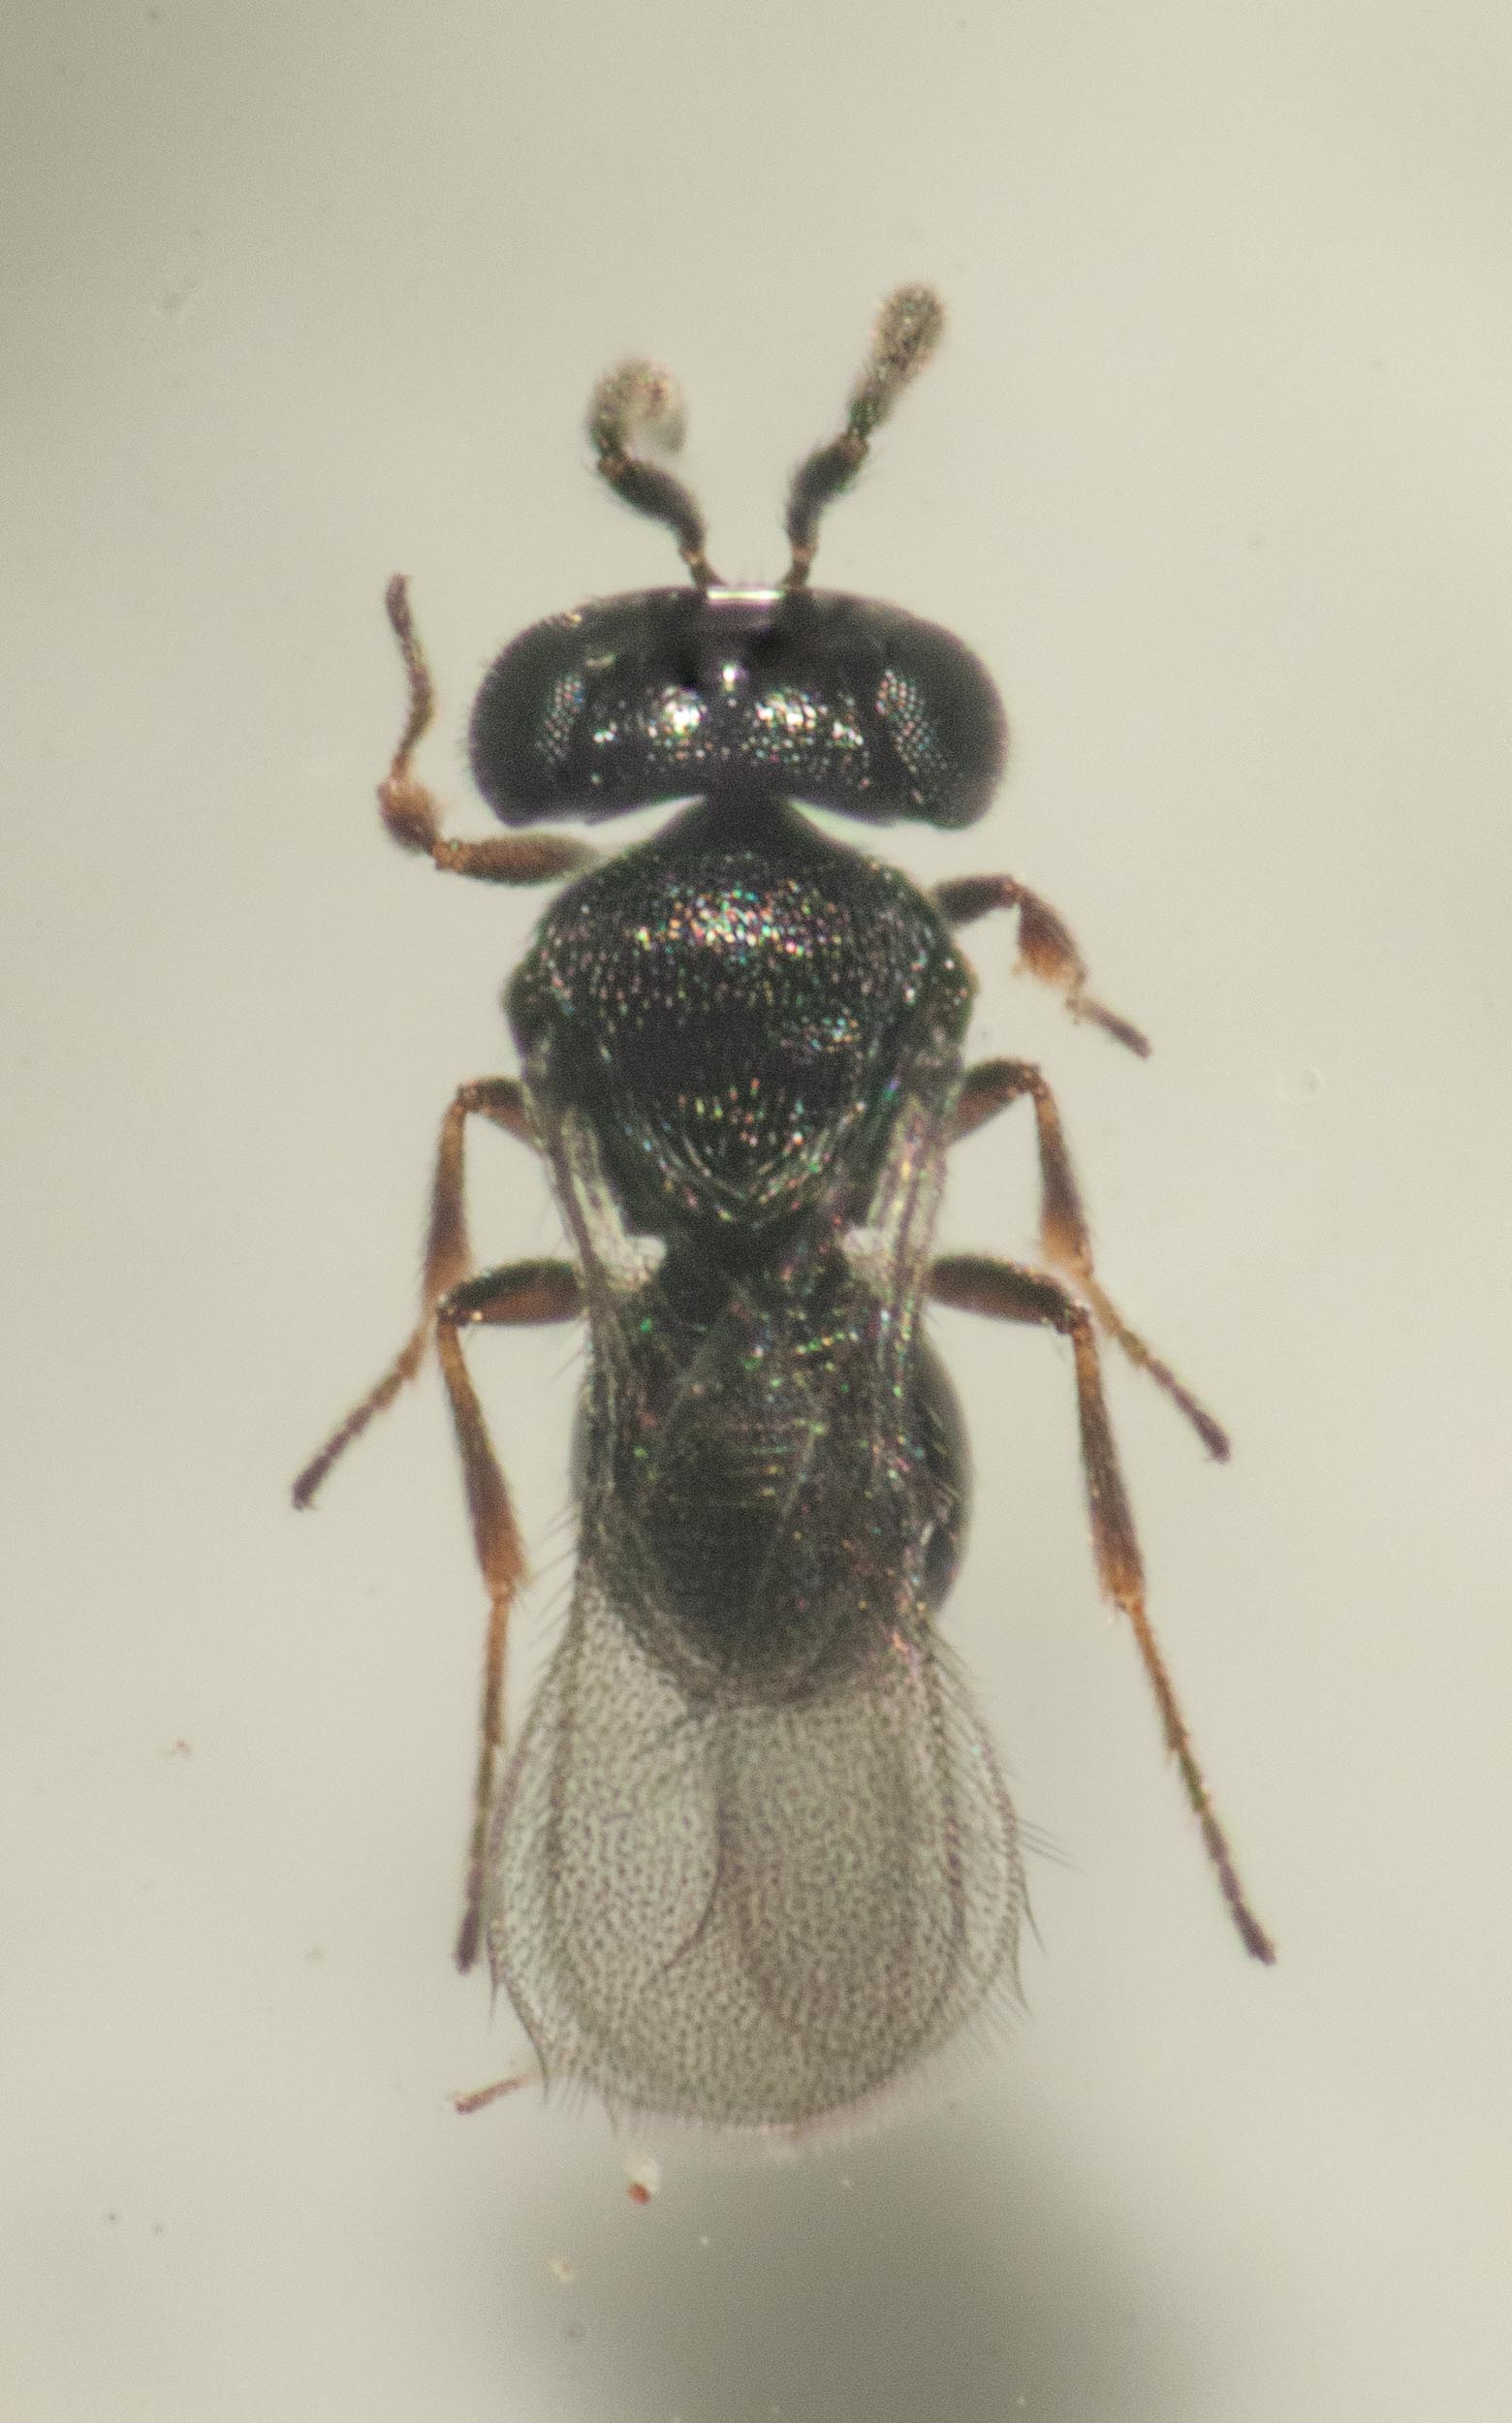 One of the wasps after it had cleaned itself up.